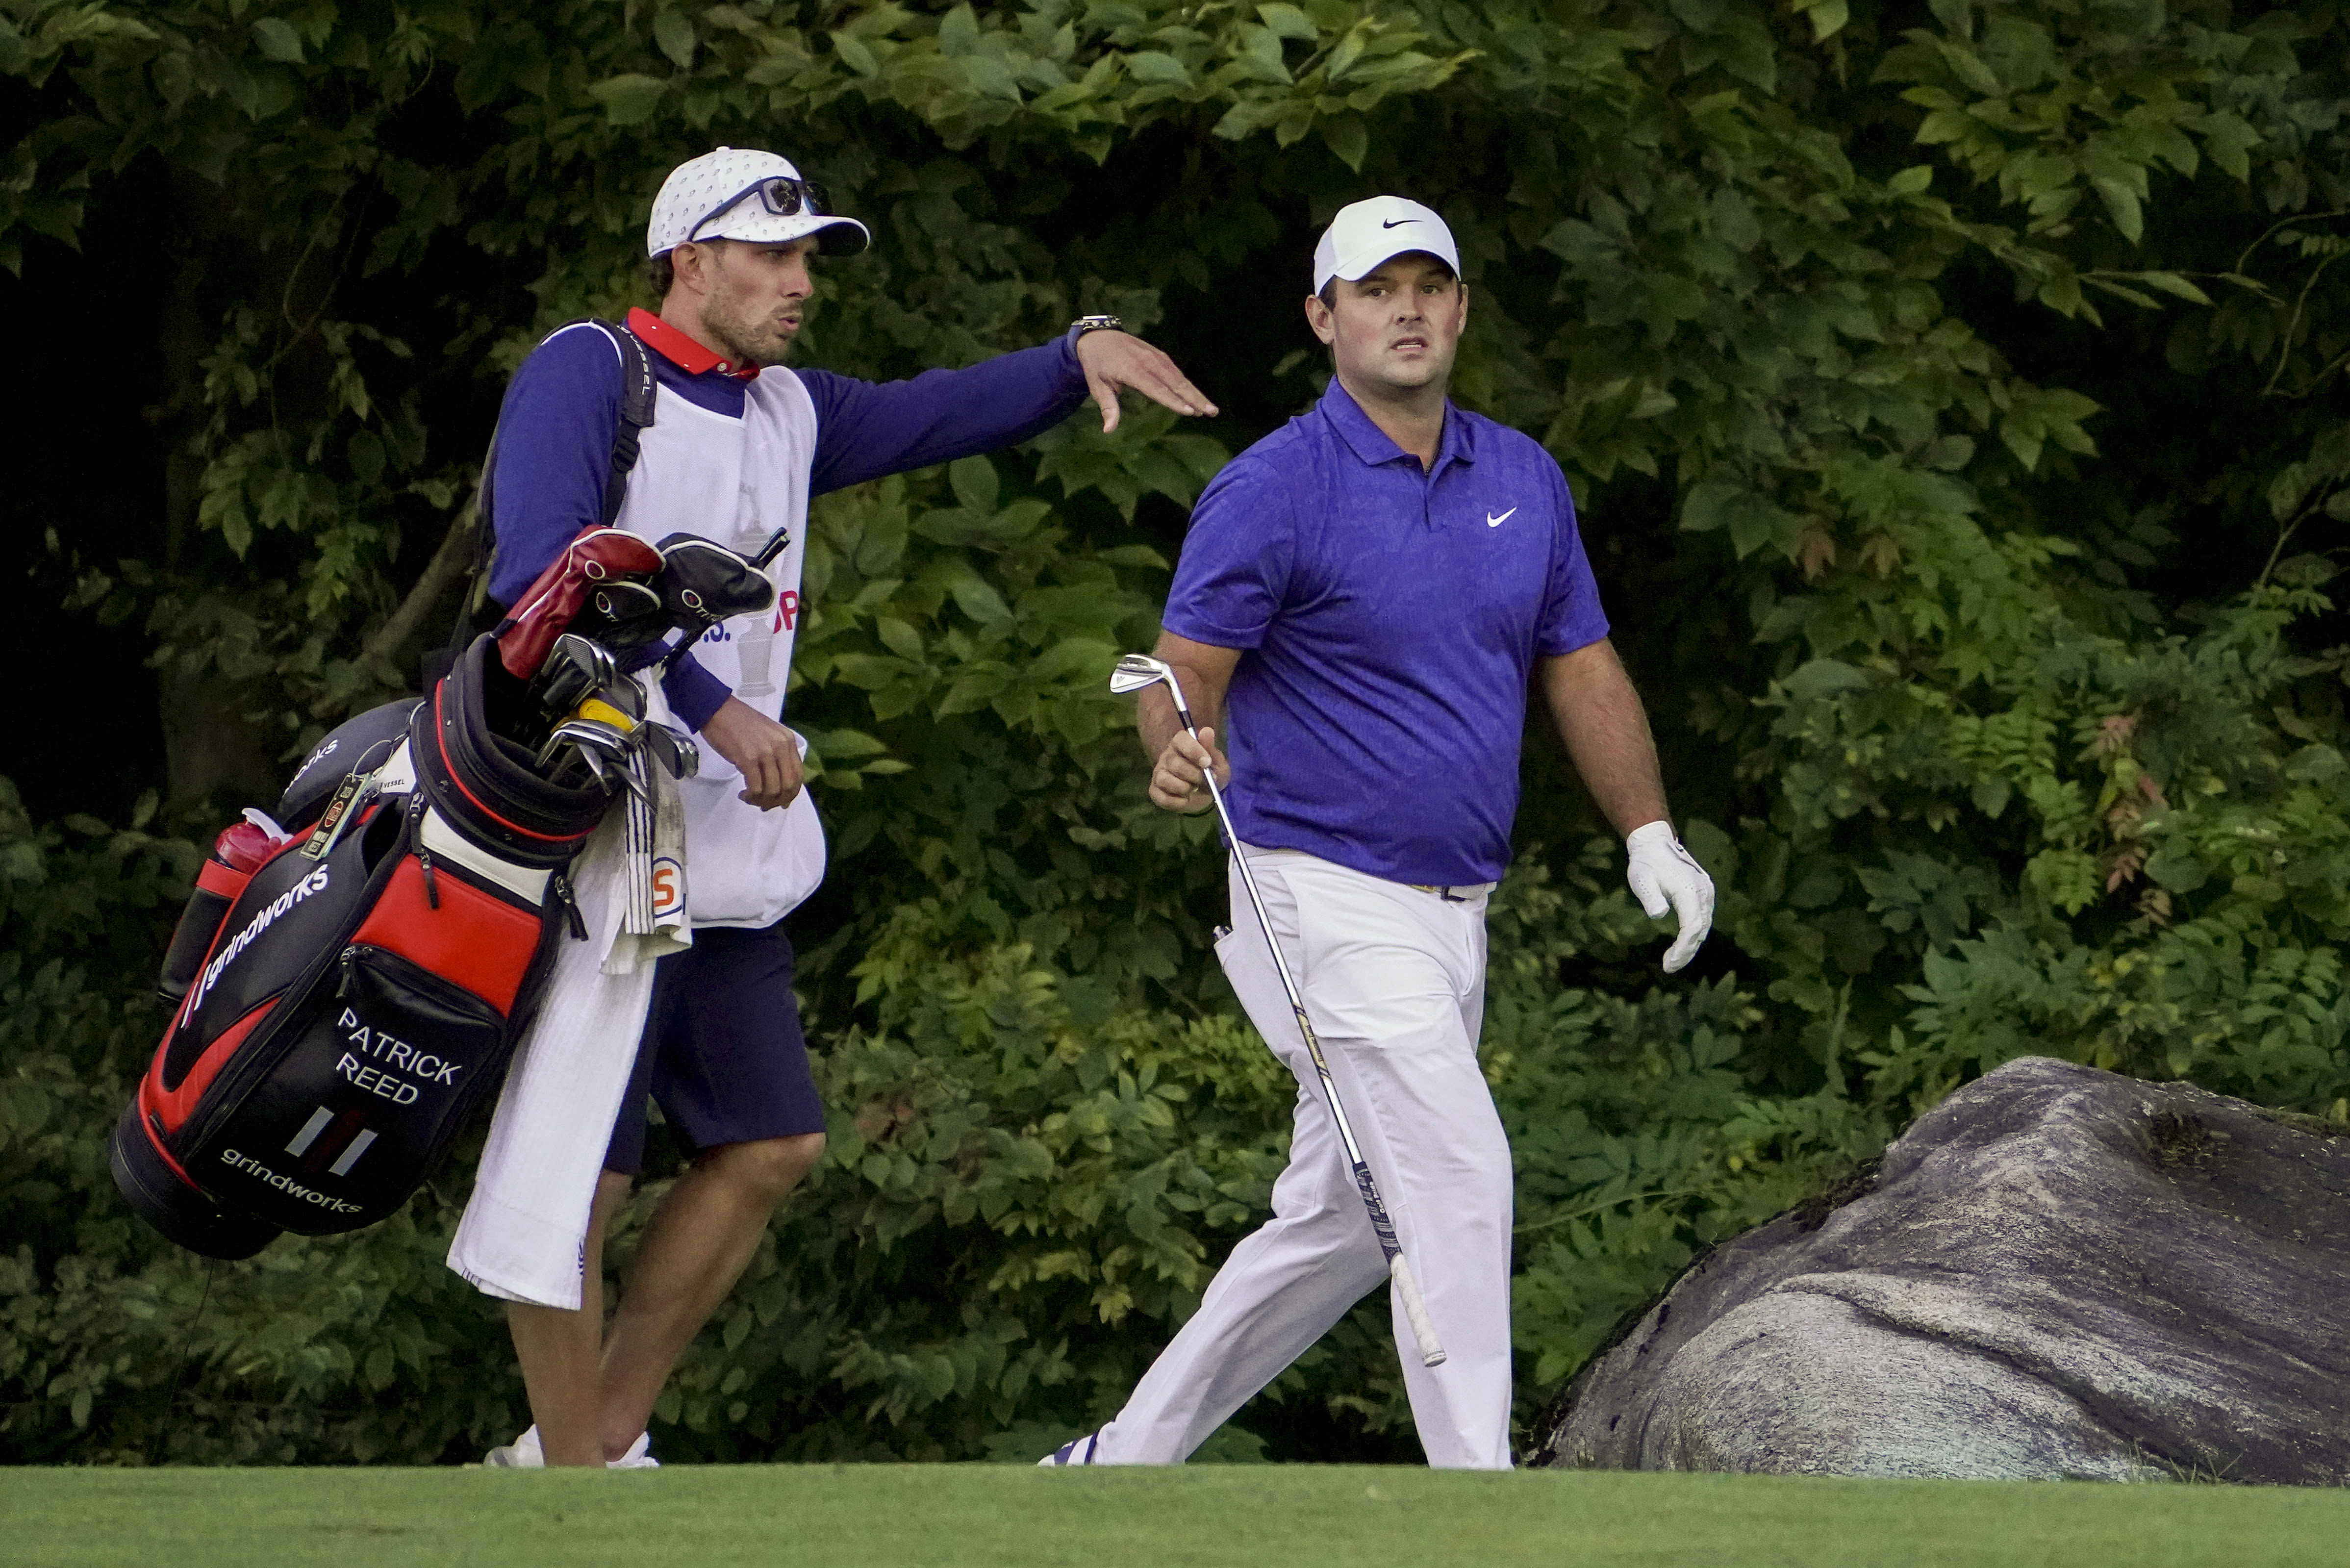 Patrick Reed, of the United States, hands a club to his caddie as they walk along the 15th fairway during the third round of the US Open Golf Championship, Saturday, Sept. 19, 2020, in Mamaroneck, N.Y. (AP Photo/John Minchillo)